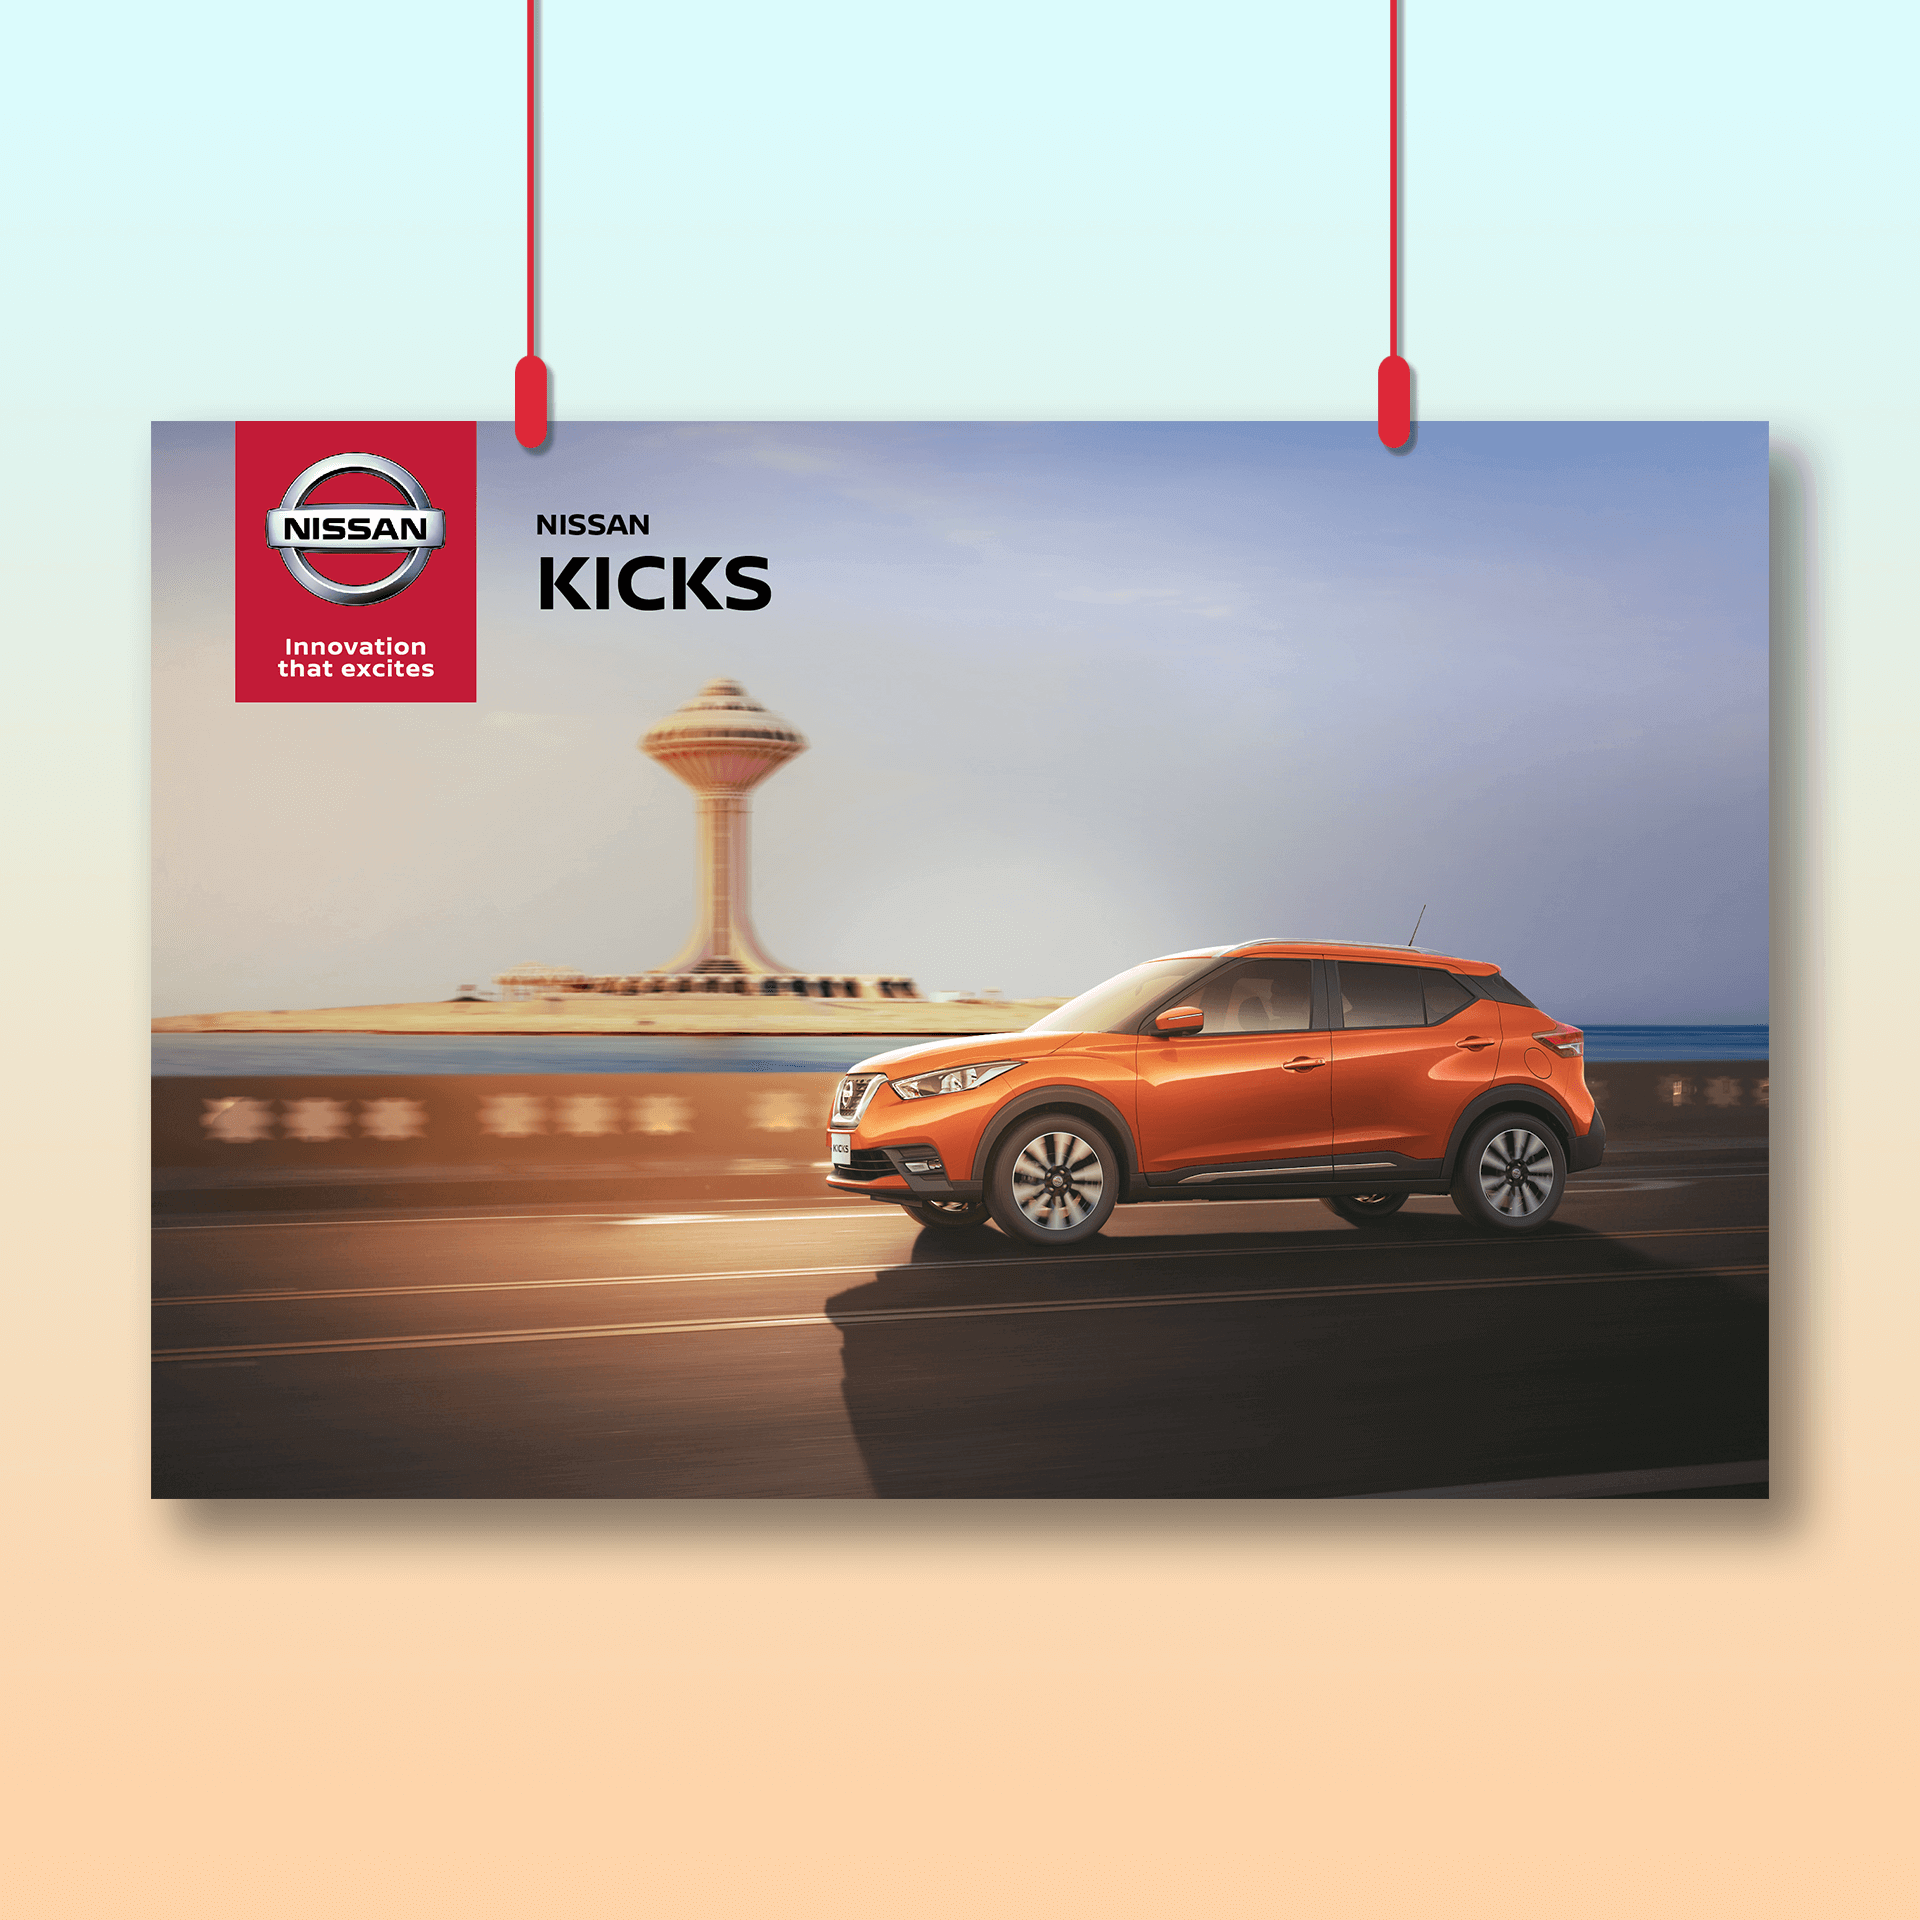 Nissan posters-01